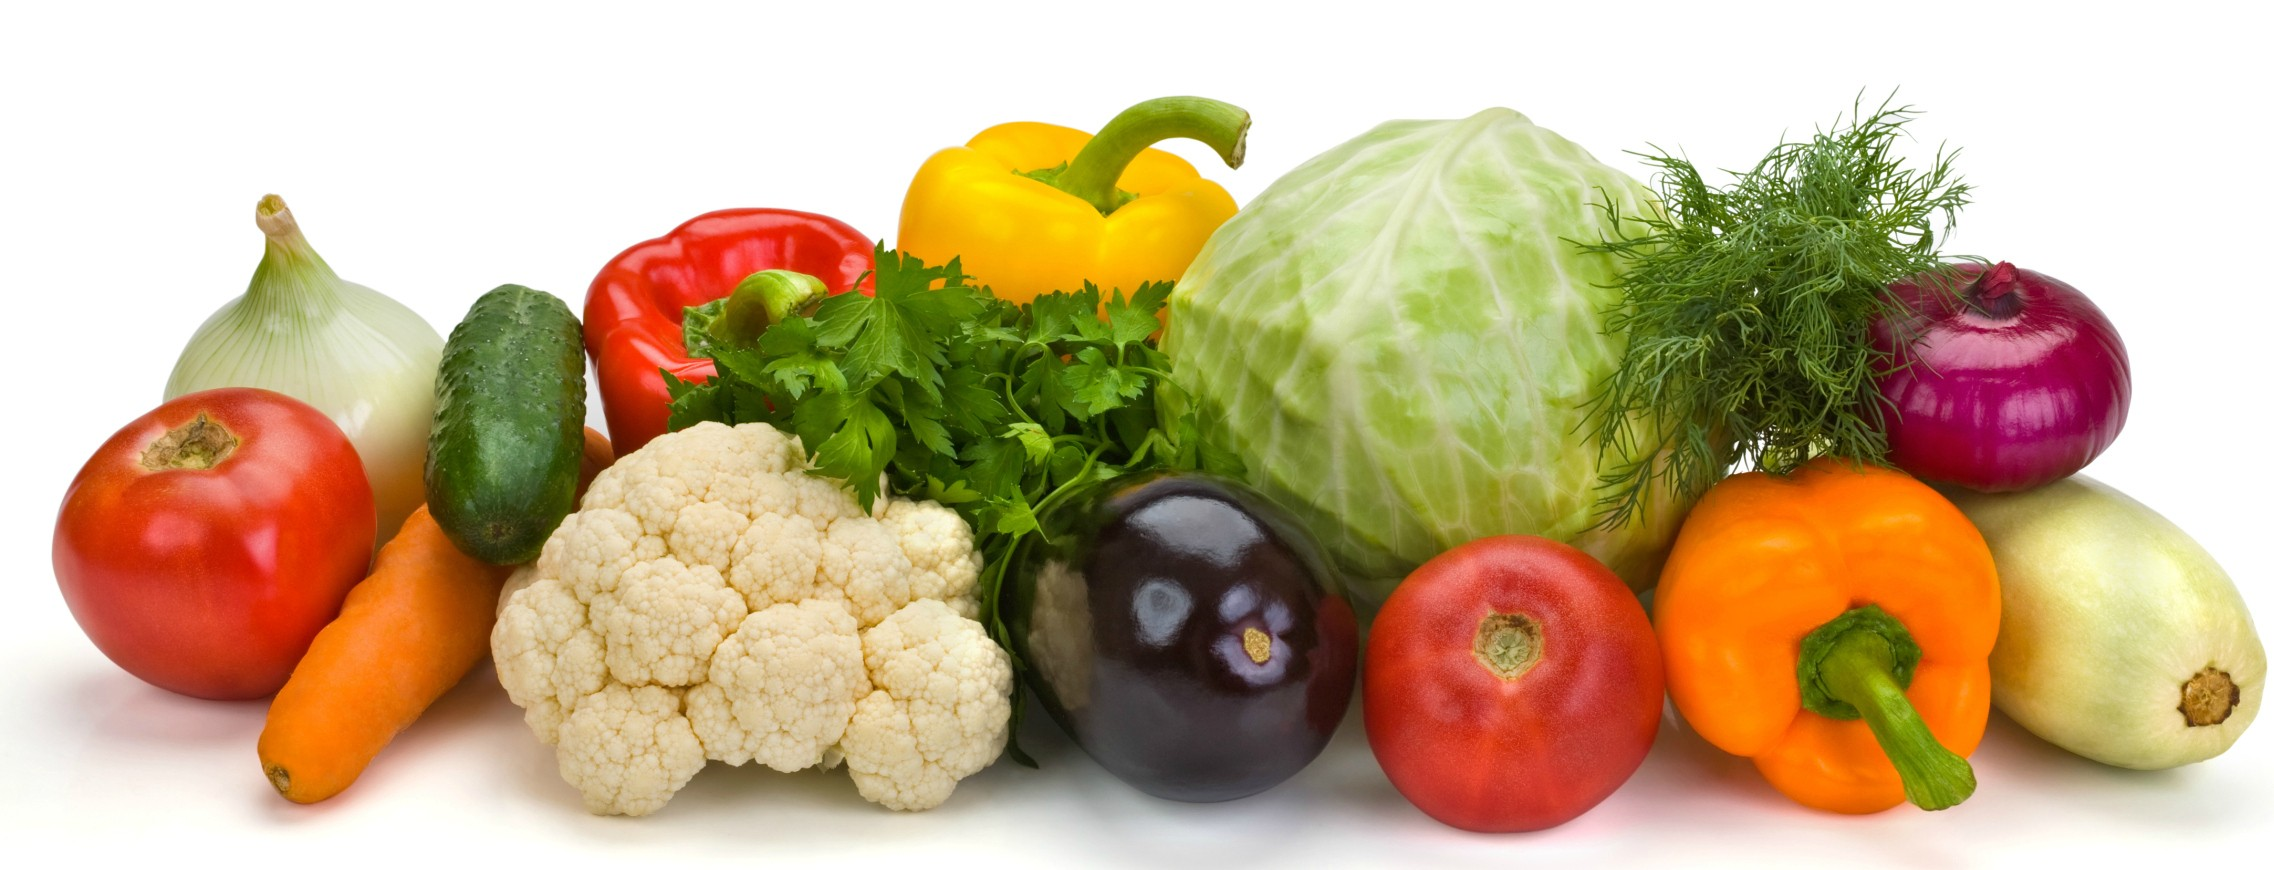 2274x870 > Vegetables Wallpapers